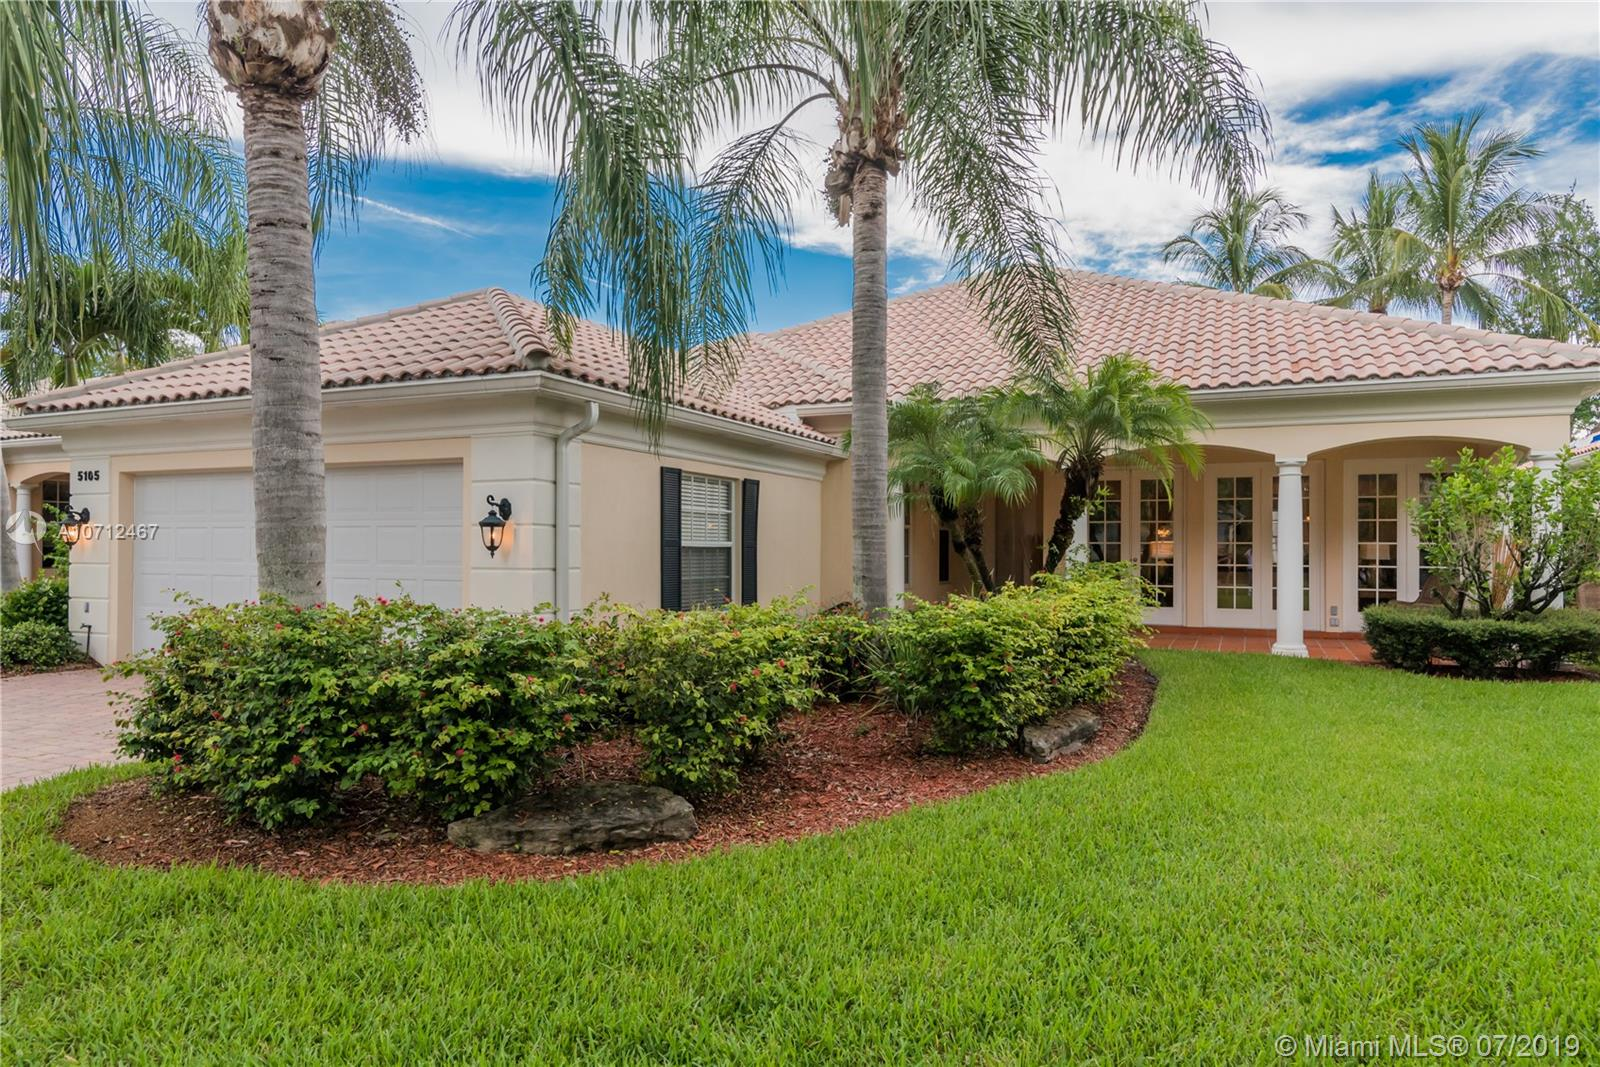 5105 Inagua way - Other City - In The State Of Florida, Florida